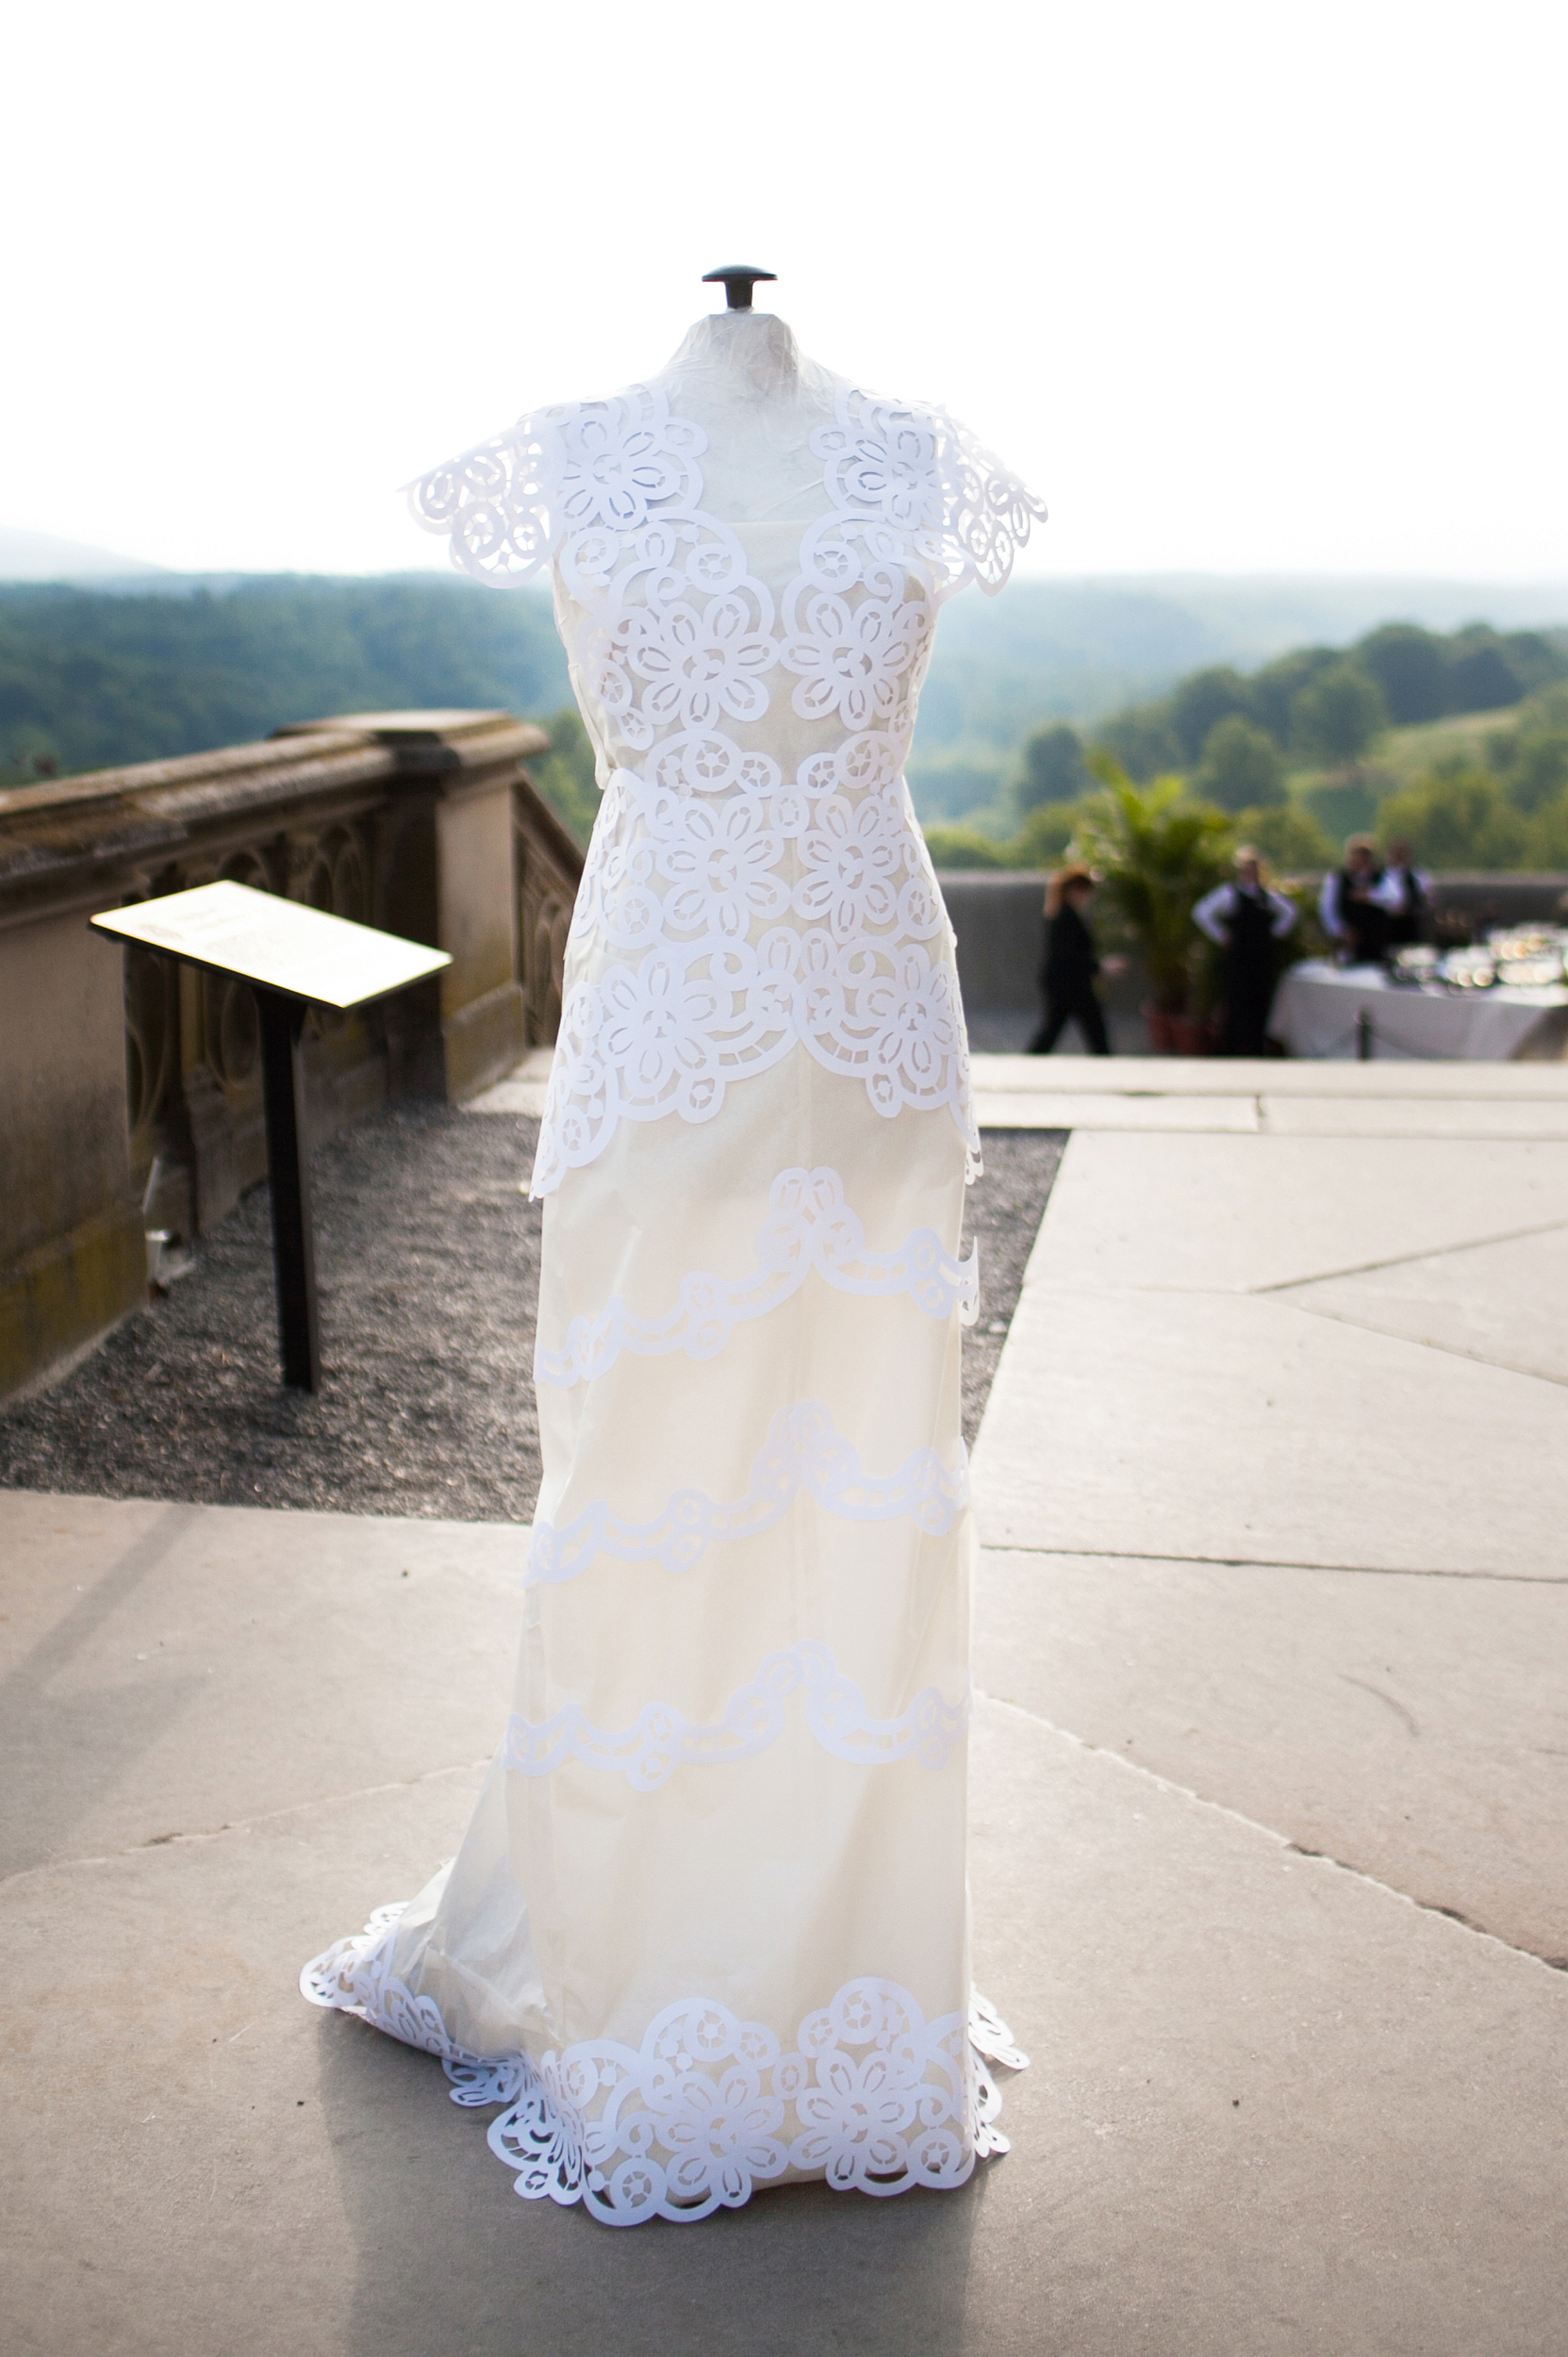 Wedding dress and scenery